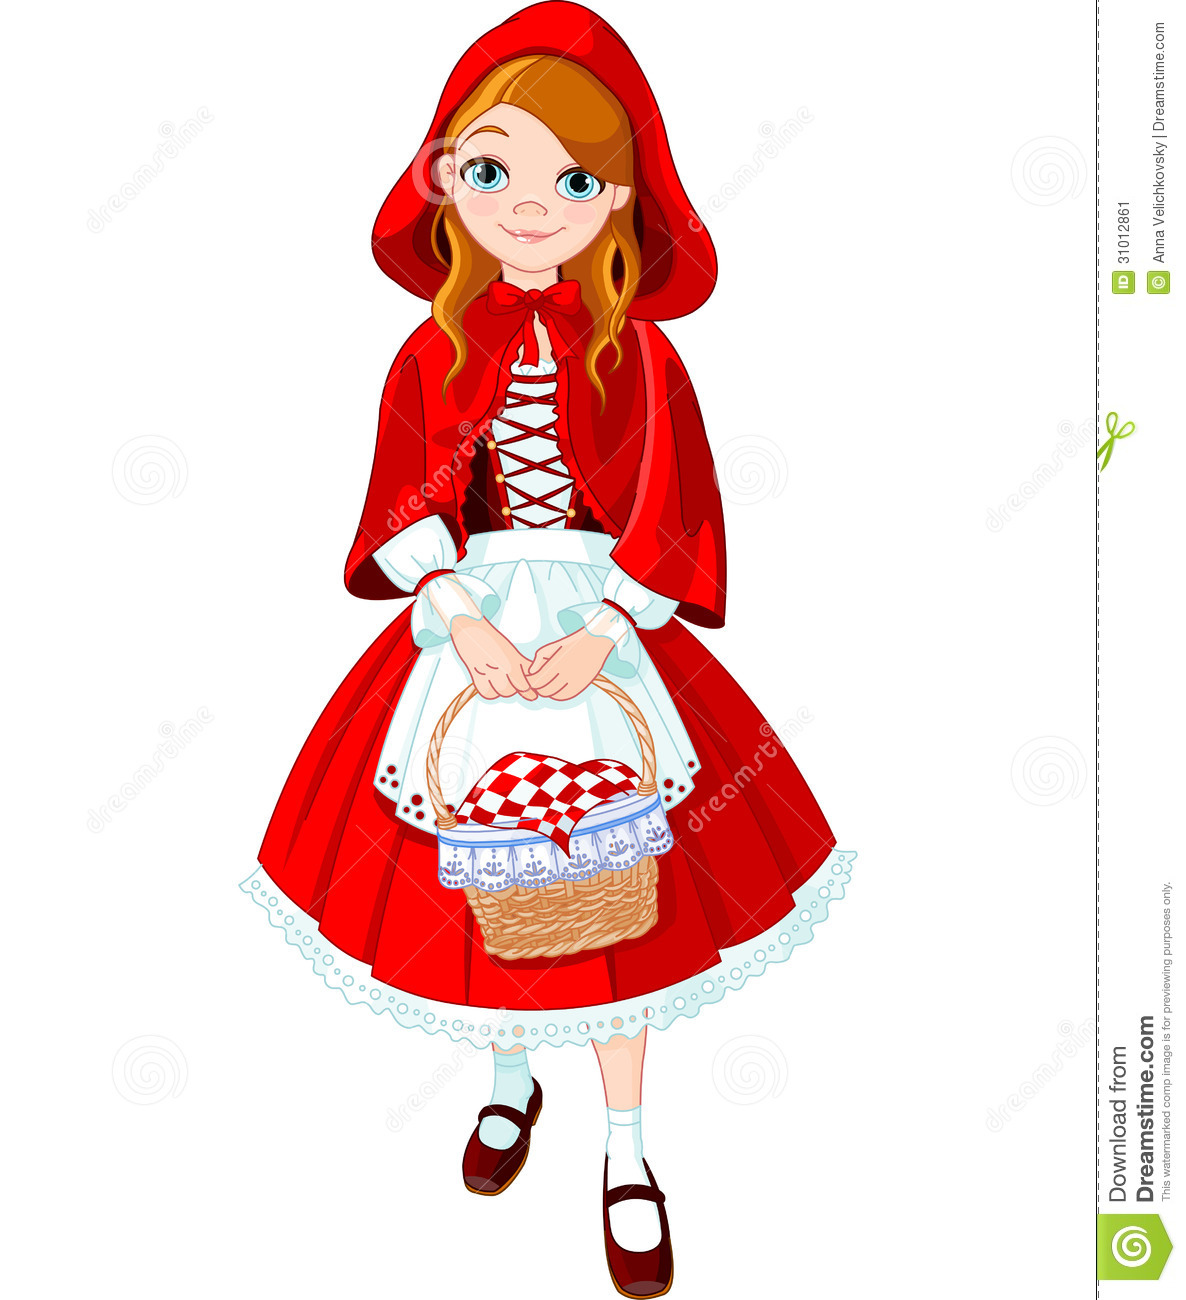 Little red riding hood full 9